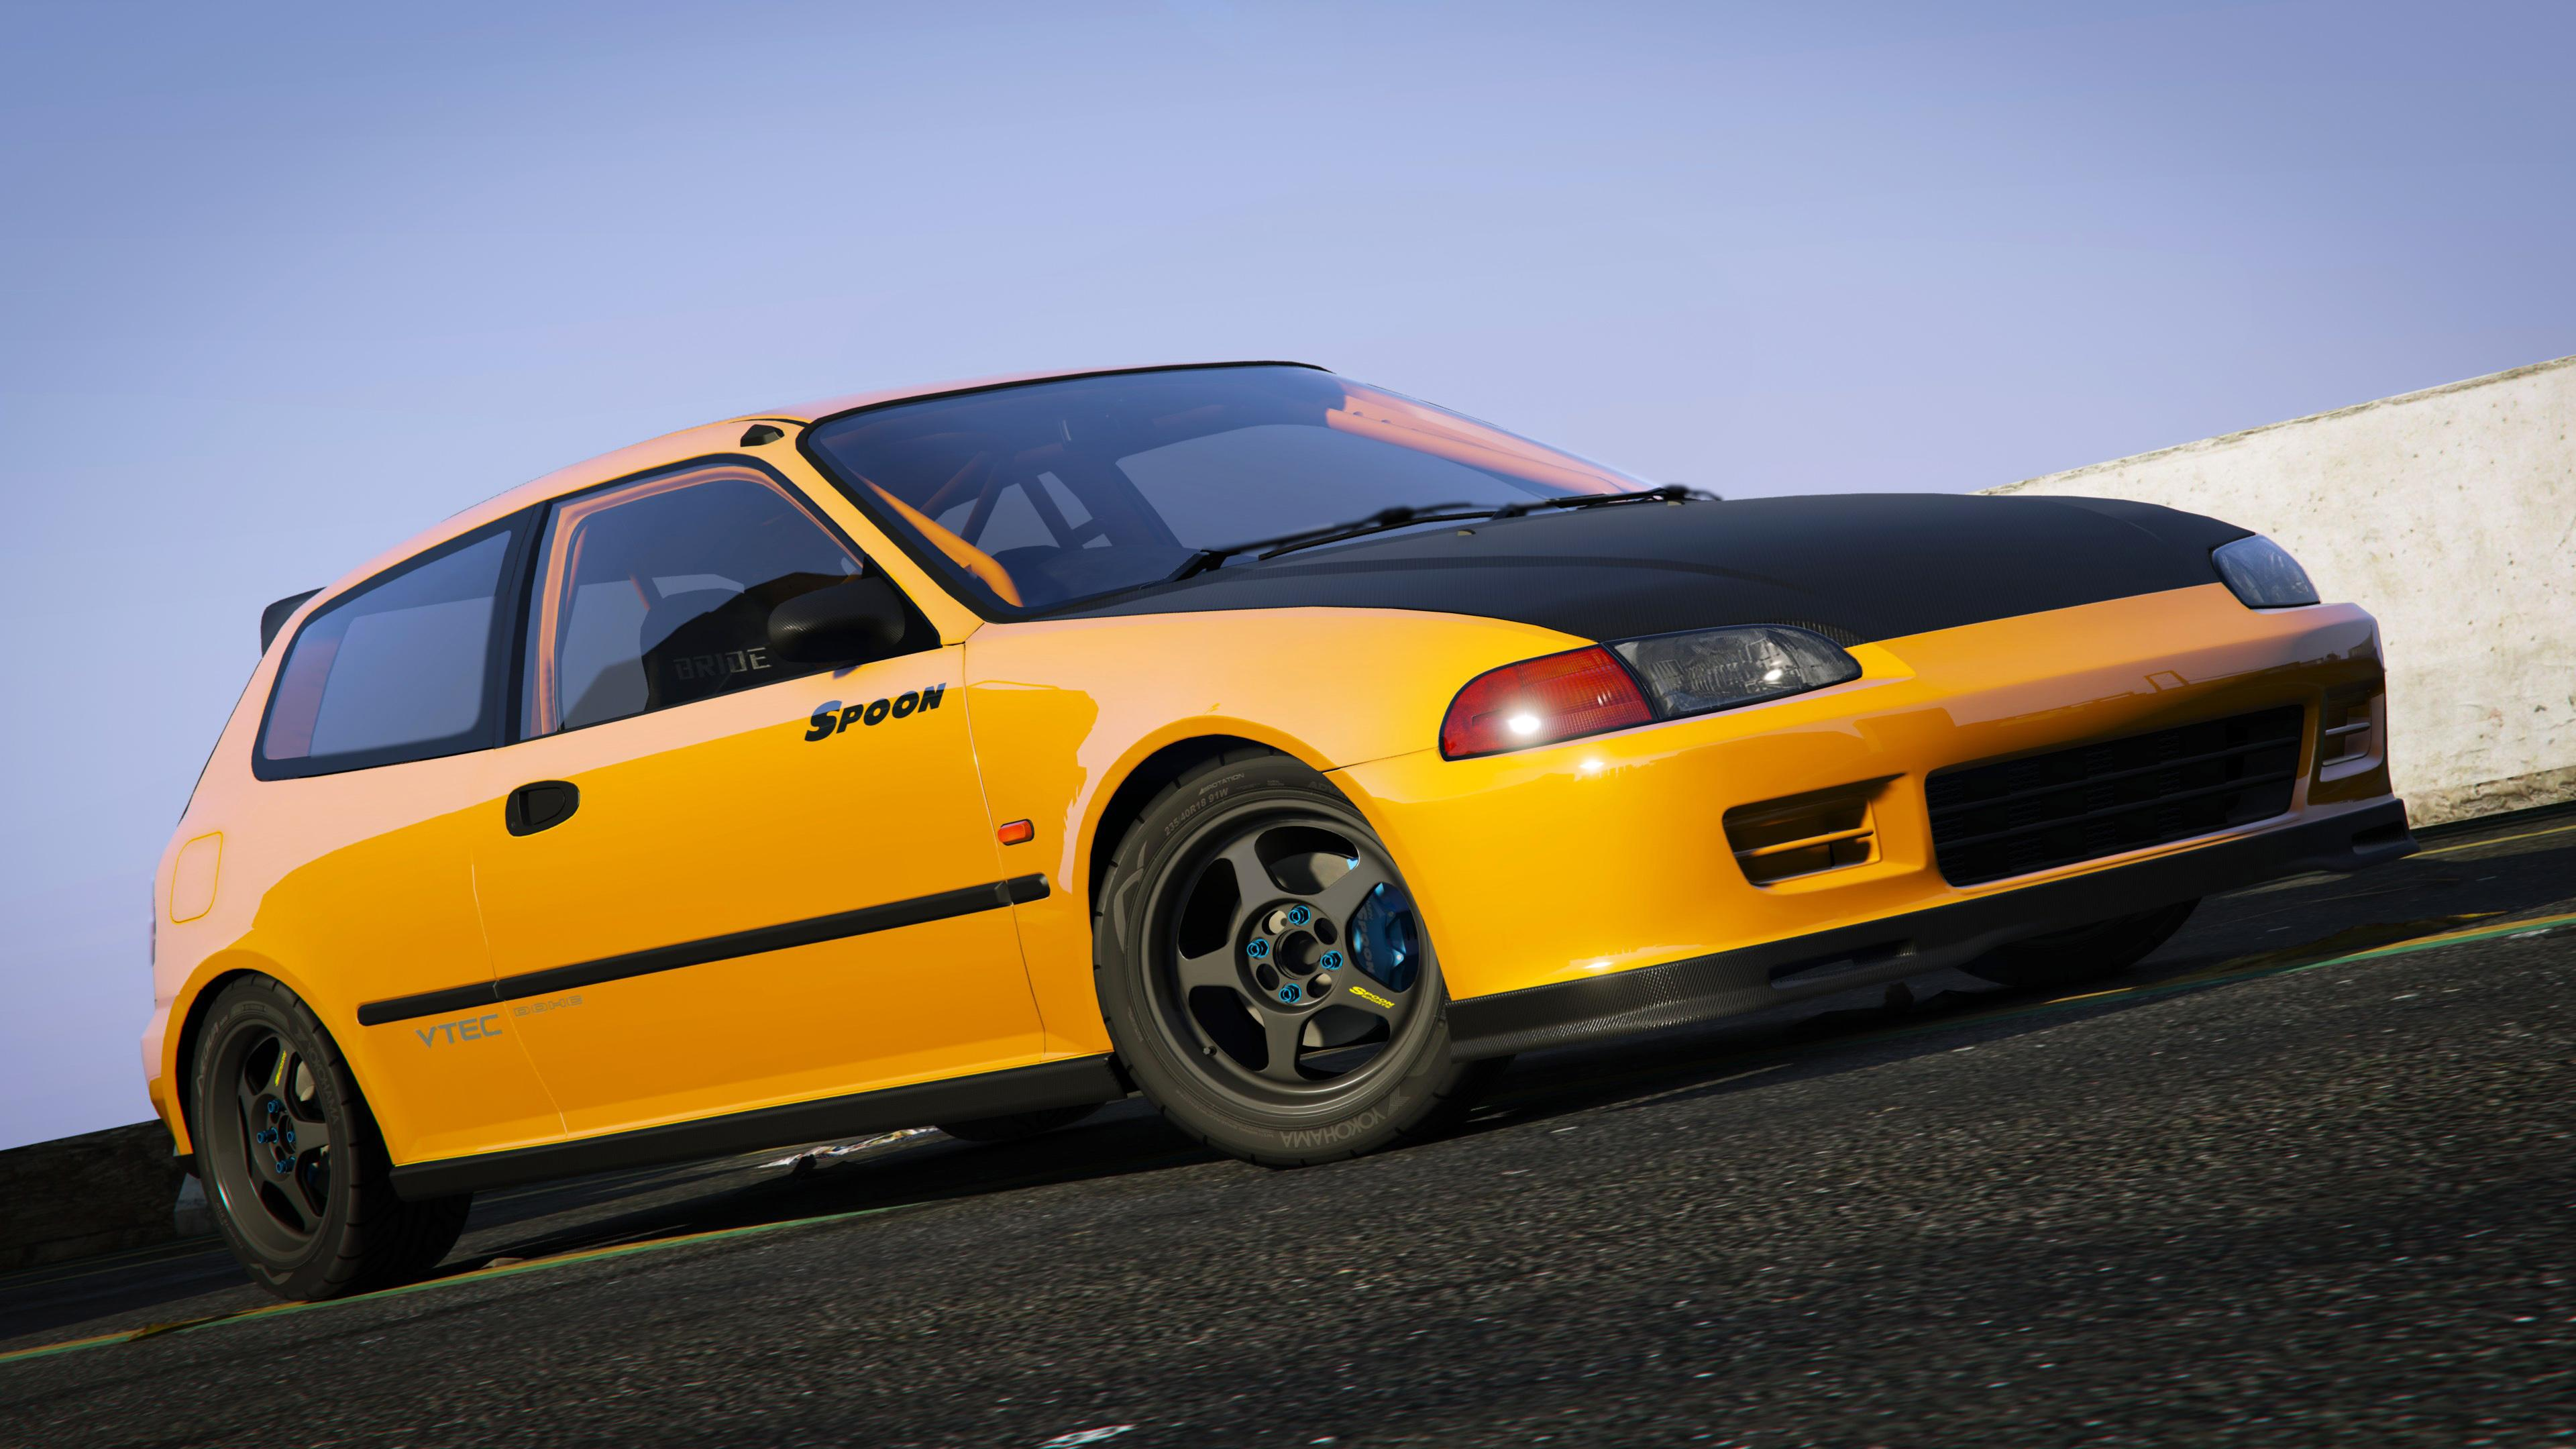 Spoon sports honda civic sir eg6 add on gta5 for Honda civic com